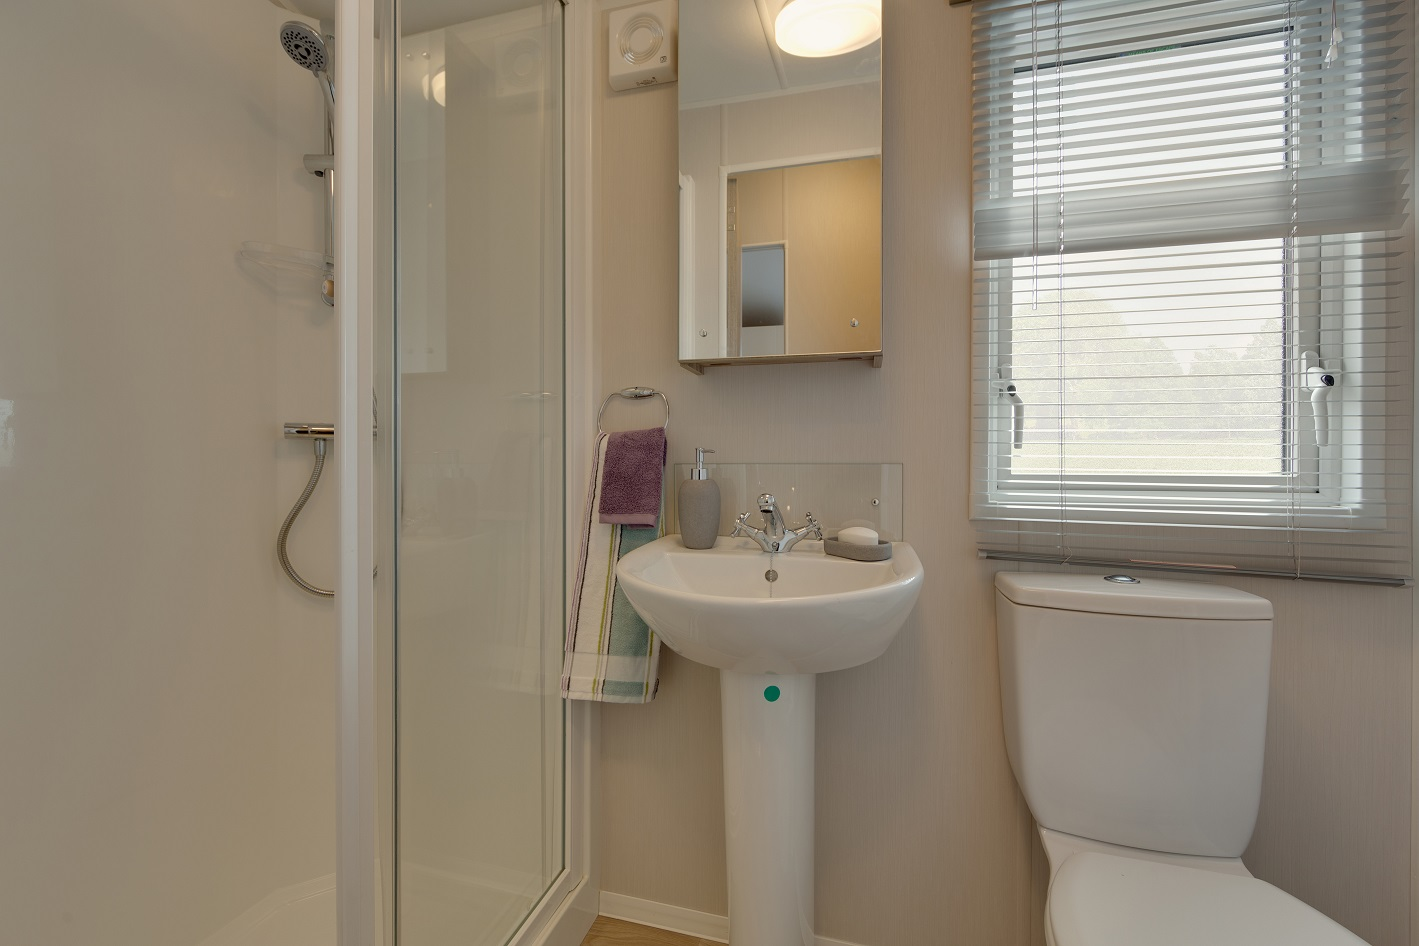 Willerby Skye: Static Caravans and Holiday Homes for Sale on Caravan Parks, Bamburgh, Northumberland Image 3